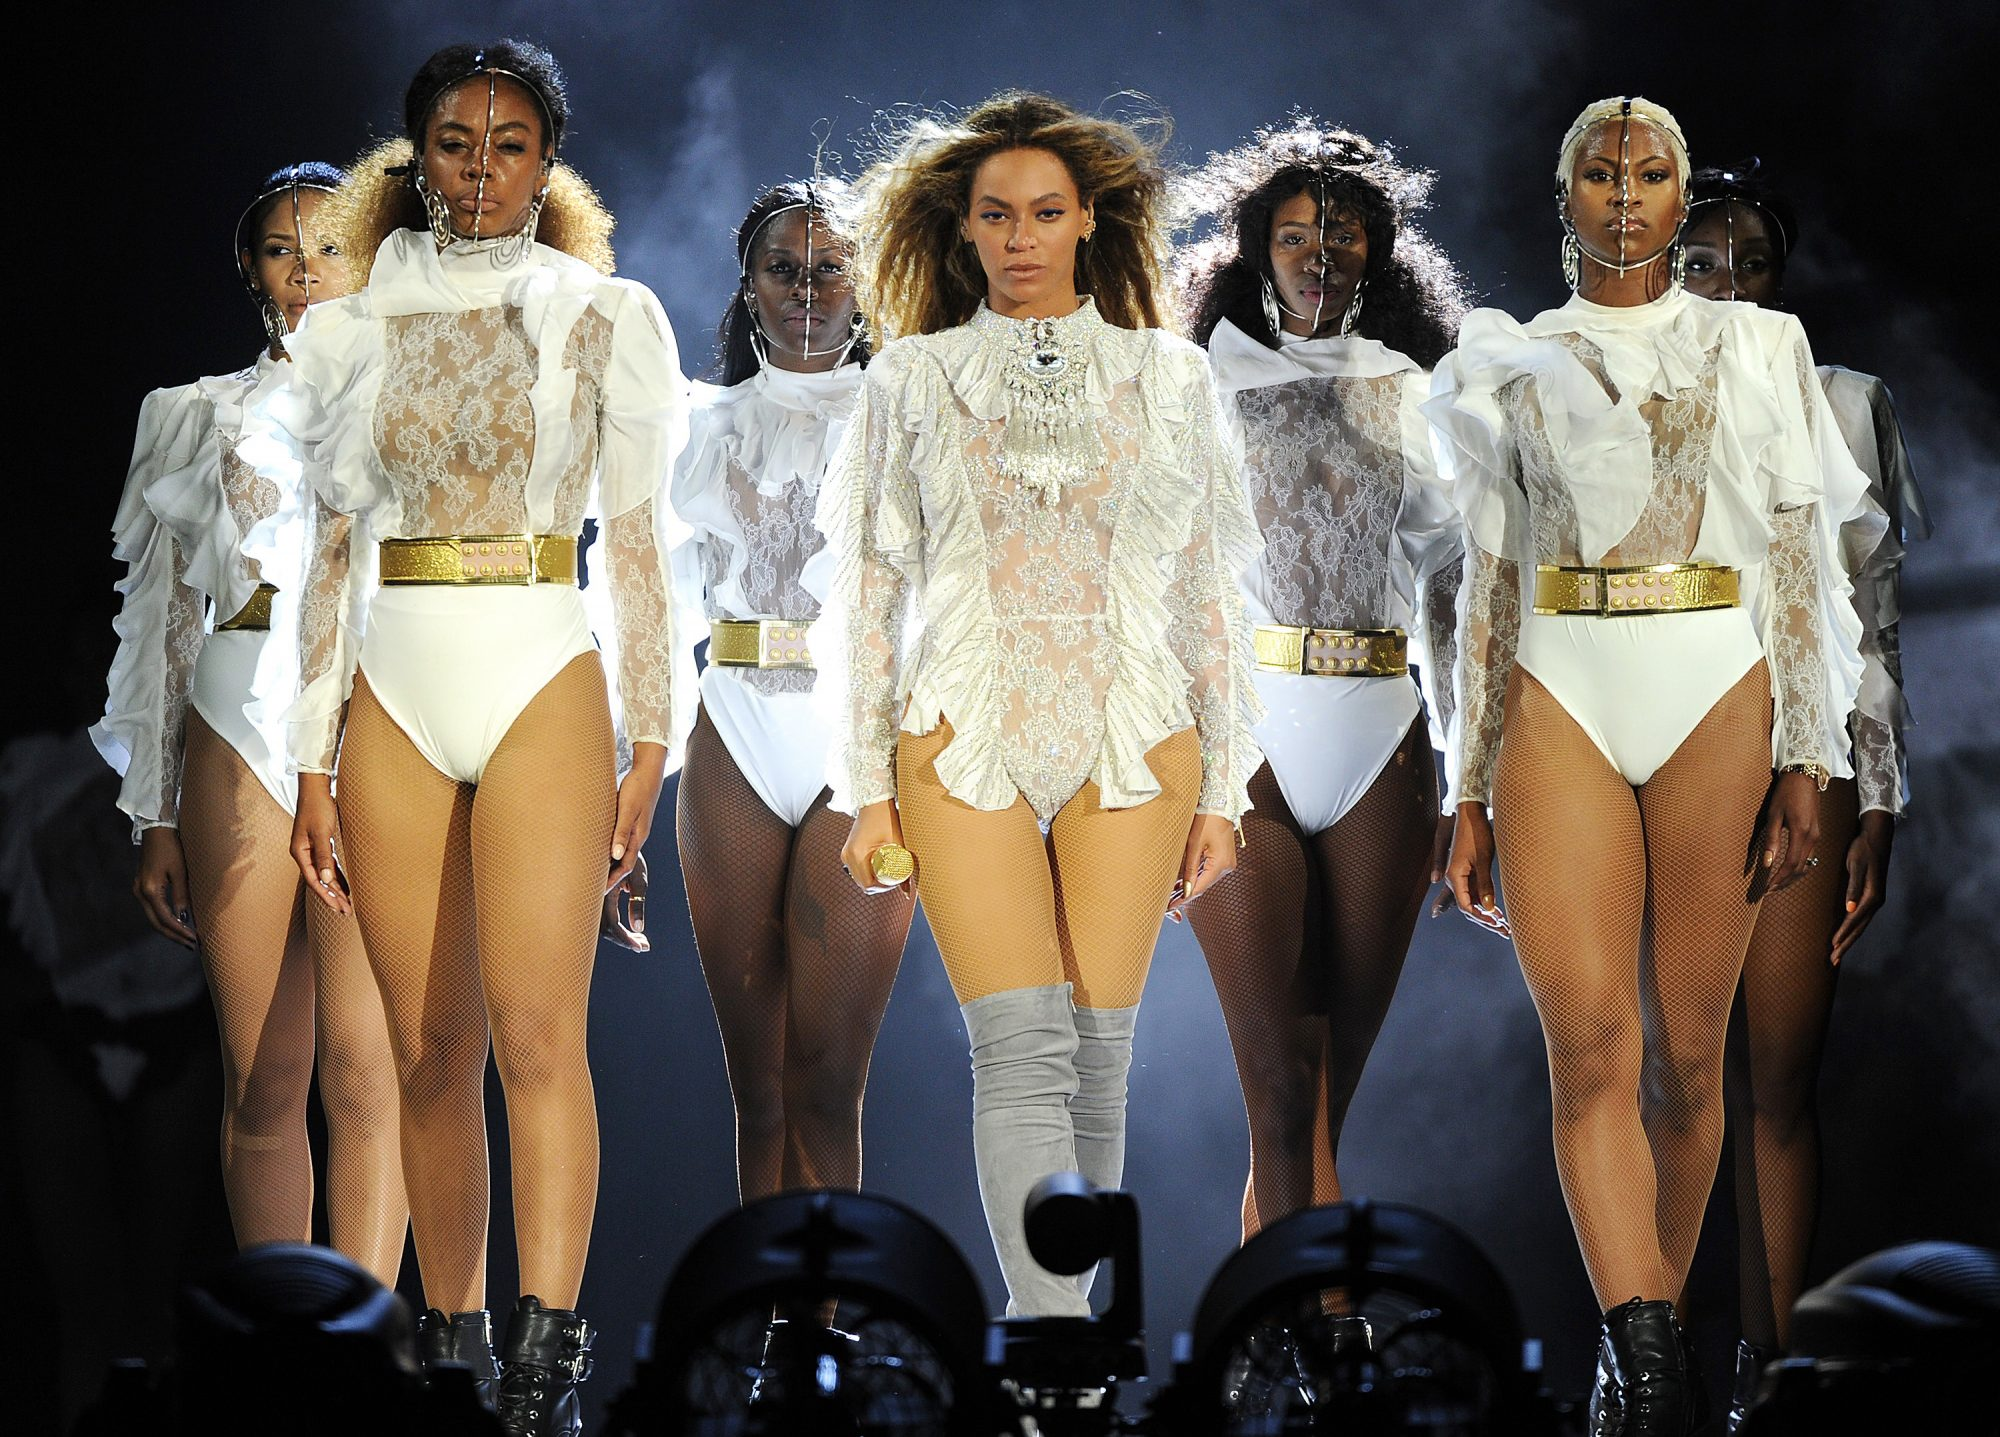 Beyonce Tour Outfits Lead